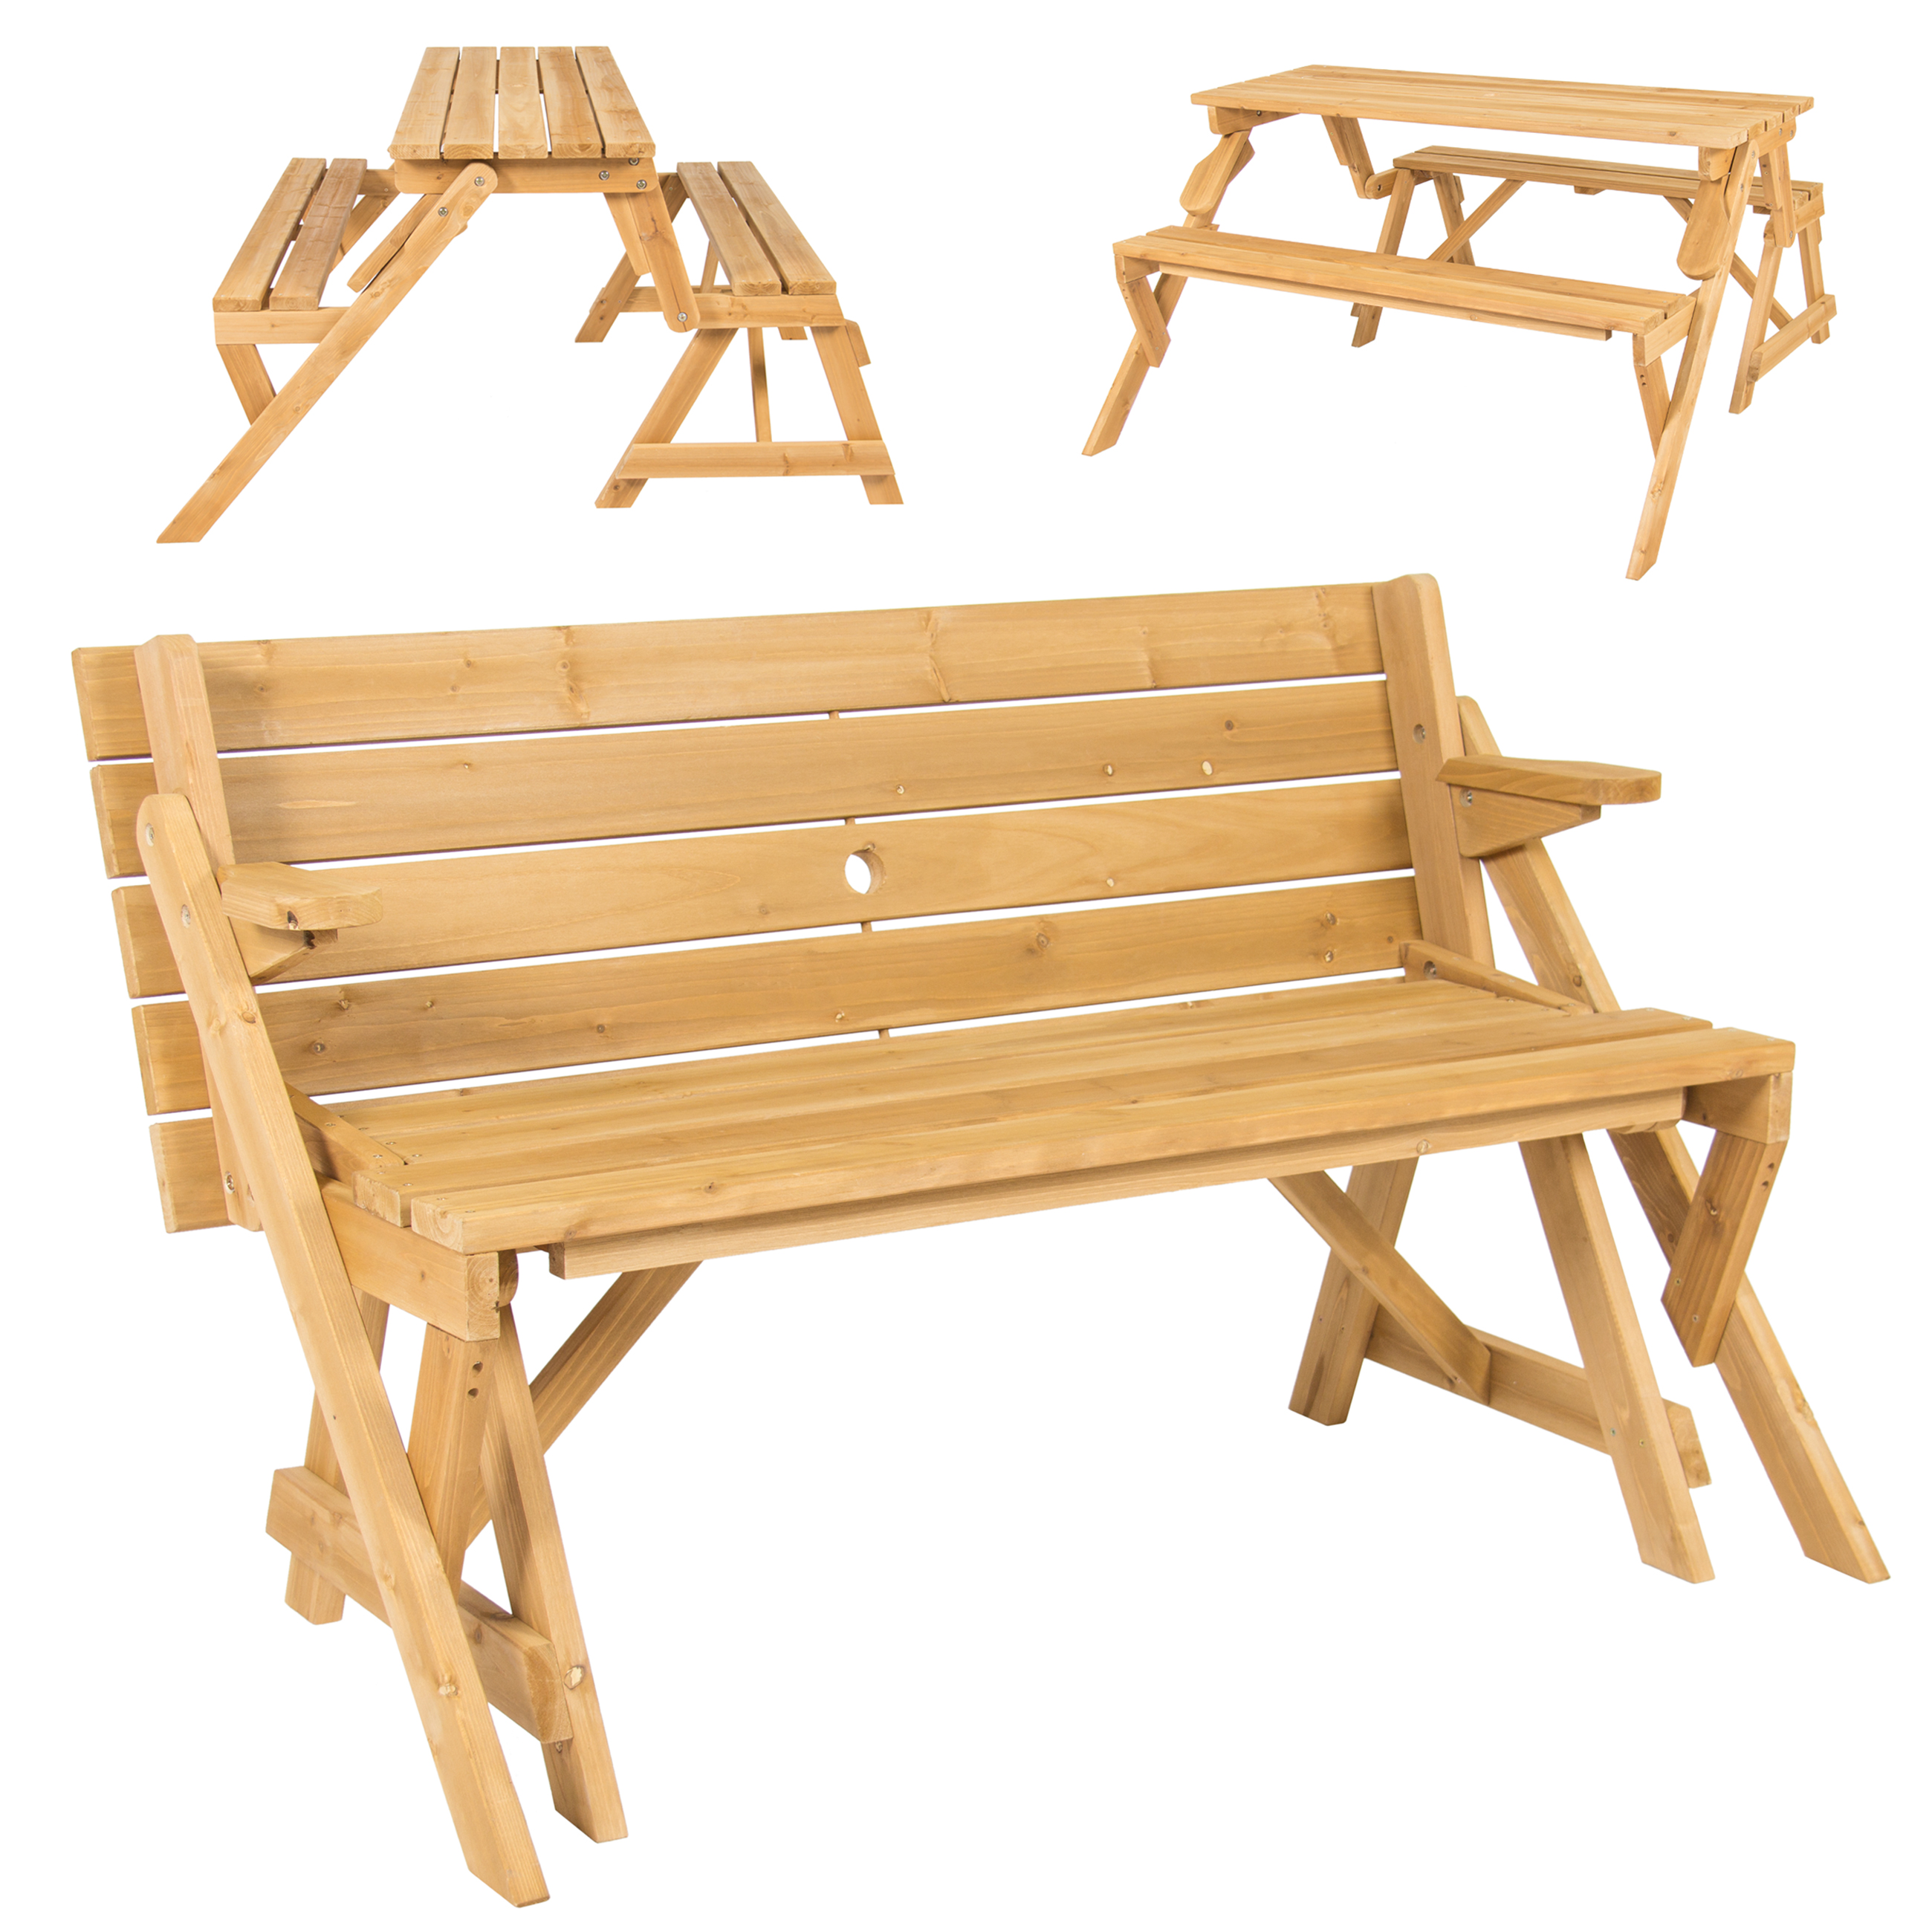 BCP Patio 2 in 1 Outdoor Interchangeable Picnic Table   Garden Bench Wood by Best Choice Products